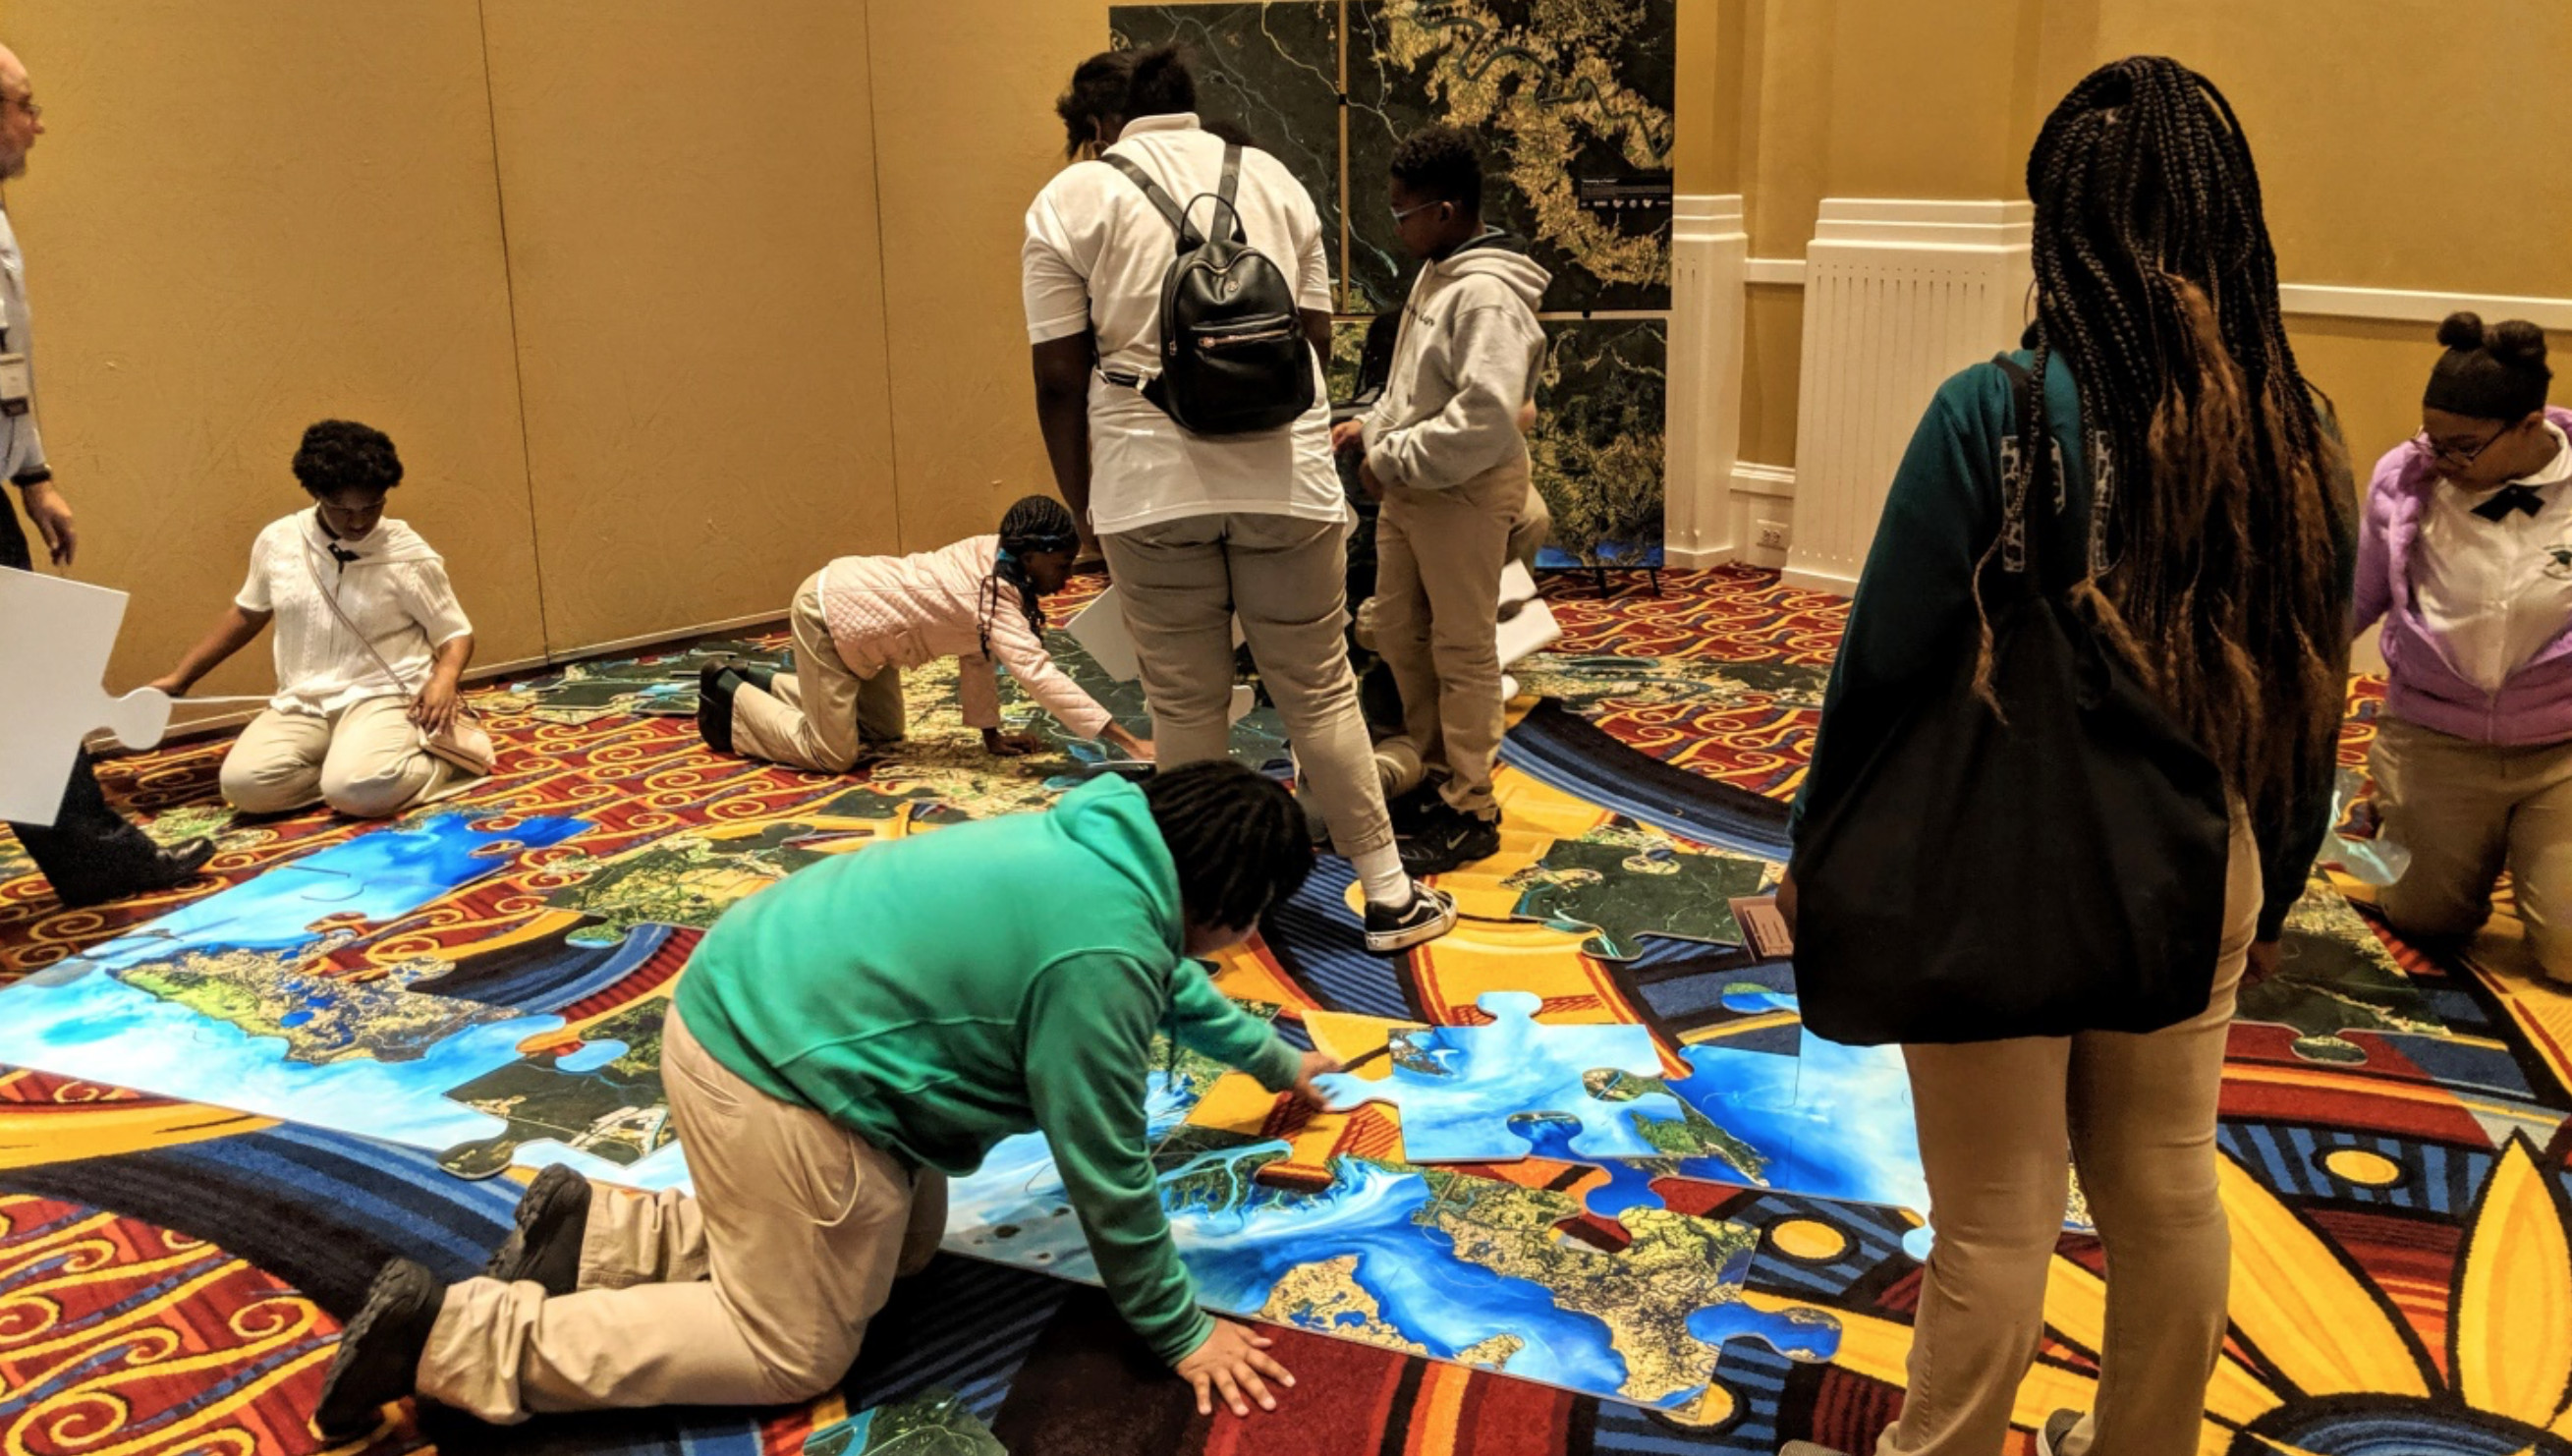 Students participate in the AmericaView Earth Observation Day event at the Pecora 21 / ISRSE 38 in Baltimore, Maryland, USA, October 2019. EOD is an AmericaView Science, Technology, Engineering, Art, and Math (STEAM) program.